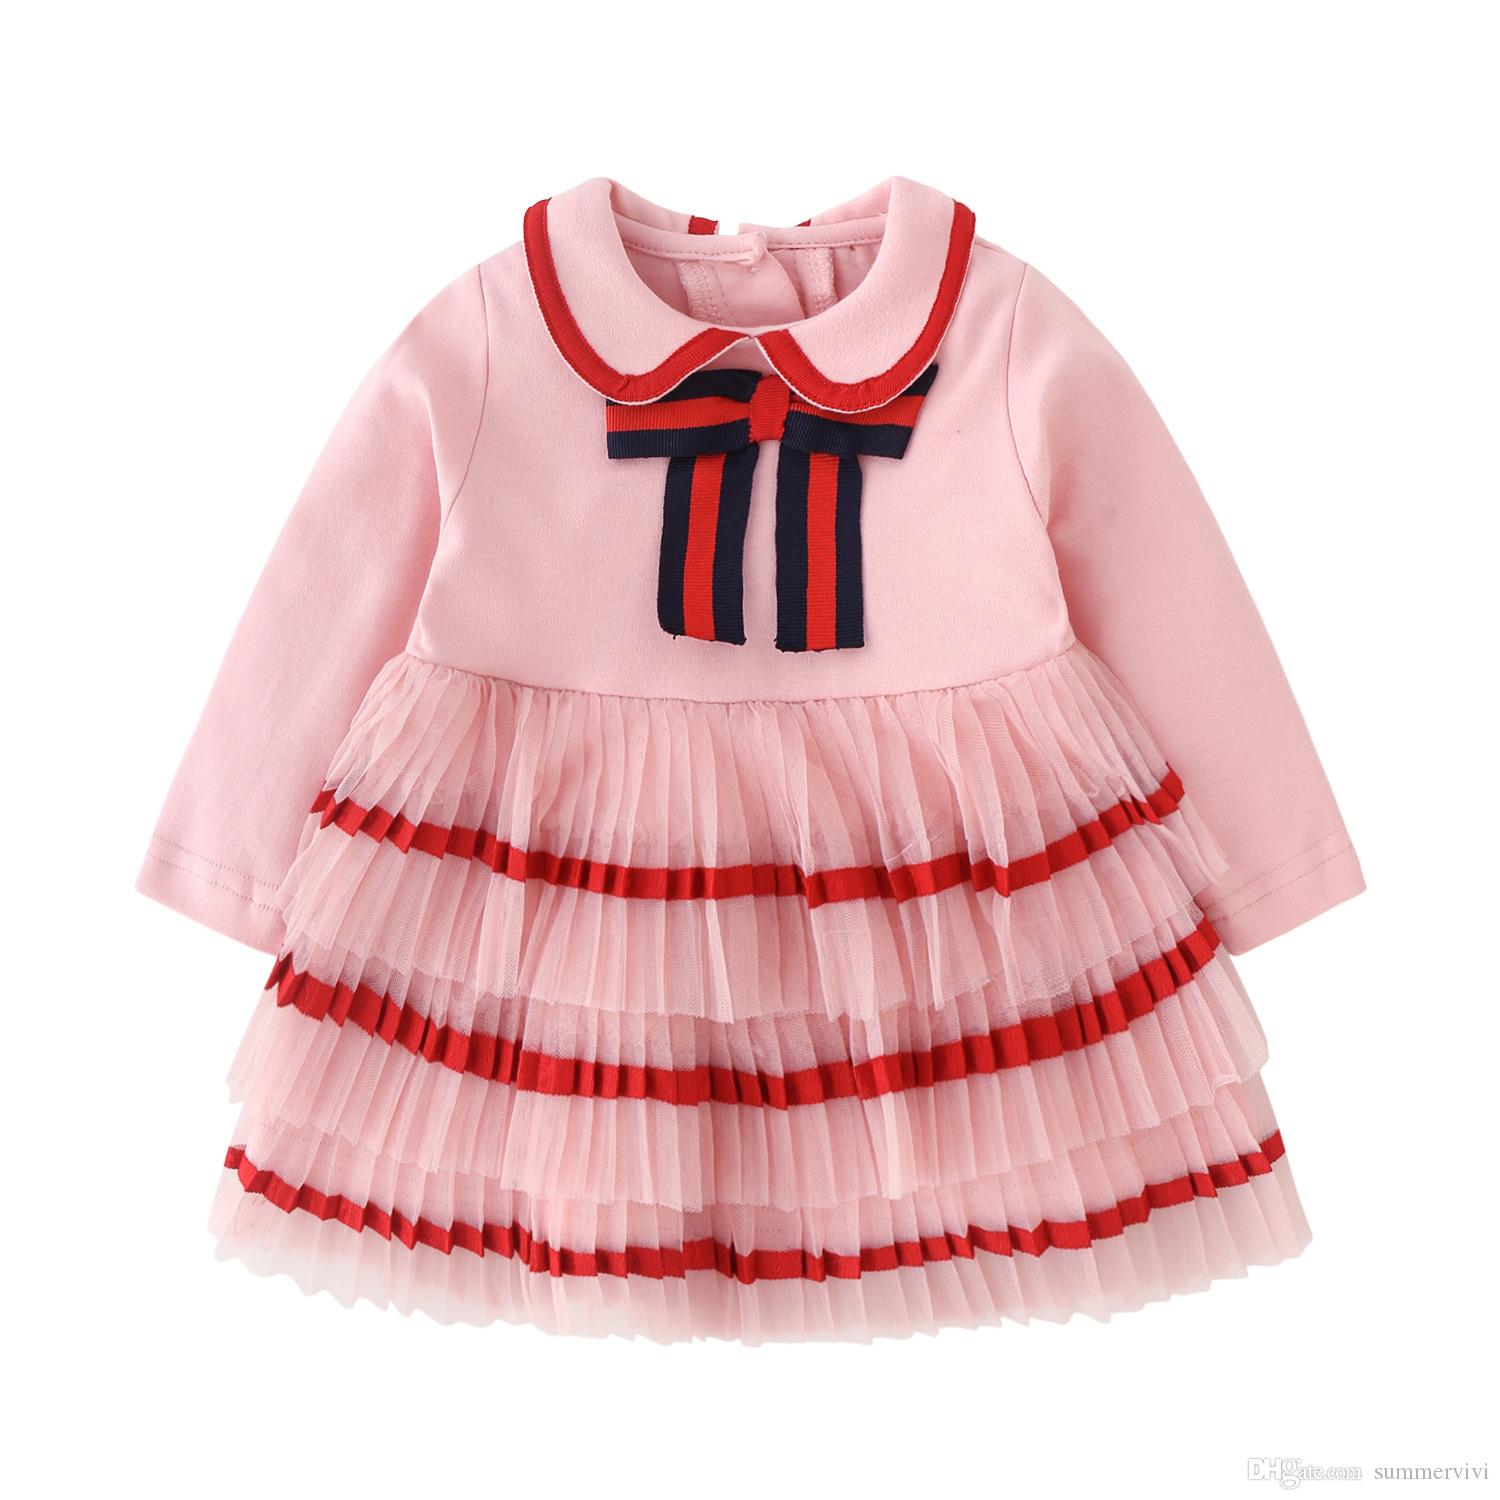 UK Toddler Kids Baby Girl Princess Checked Lace Plaid Party Dress Clothes Outfit